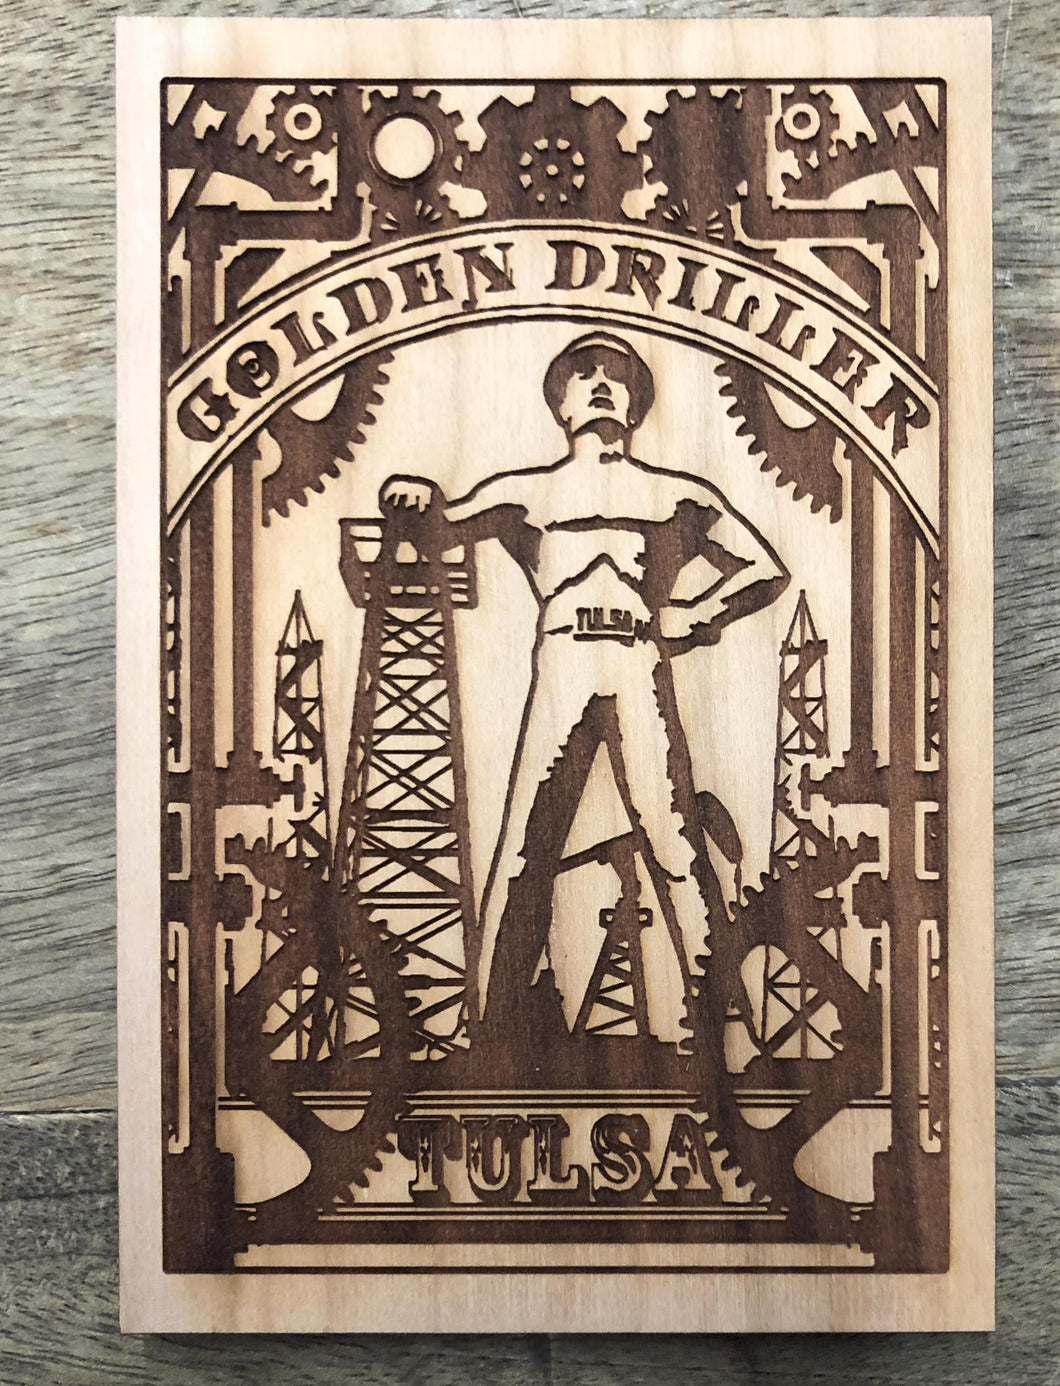 Golden Driller Wood Post Card